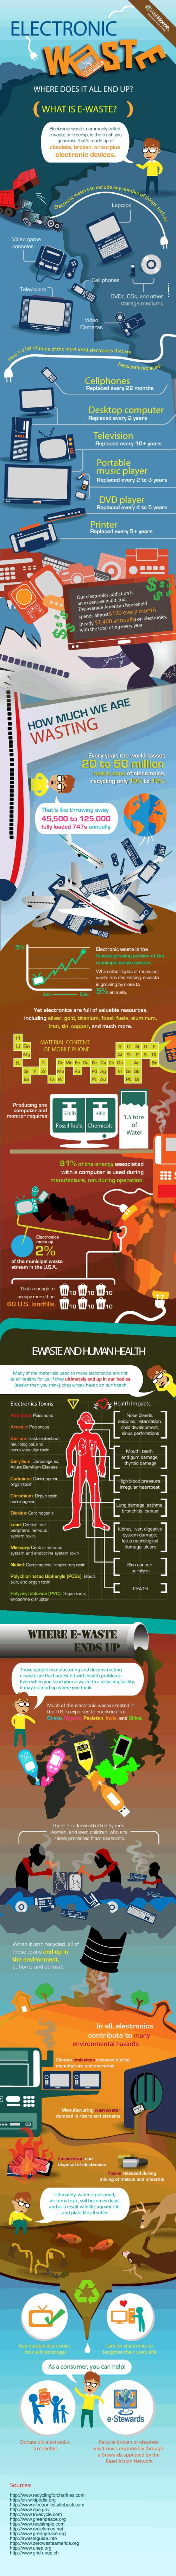 At least there is a positive contribution we can all make to the growing problem of e-waste | What happens to all the E-waste we produce? http://calgary.isgreen.ca/